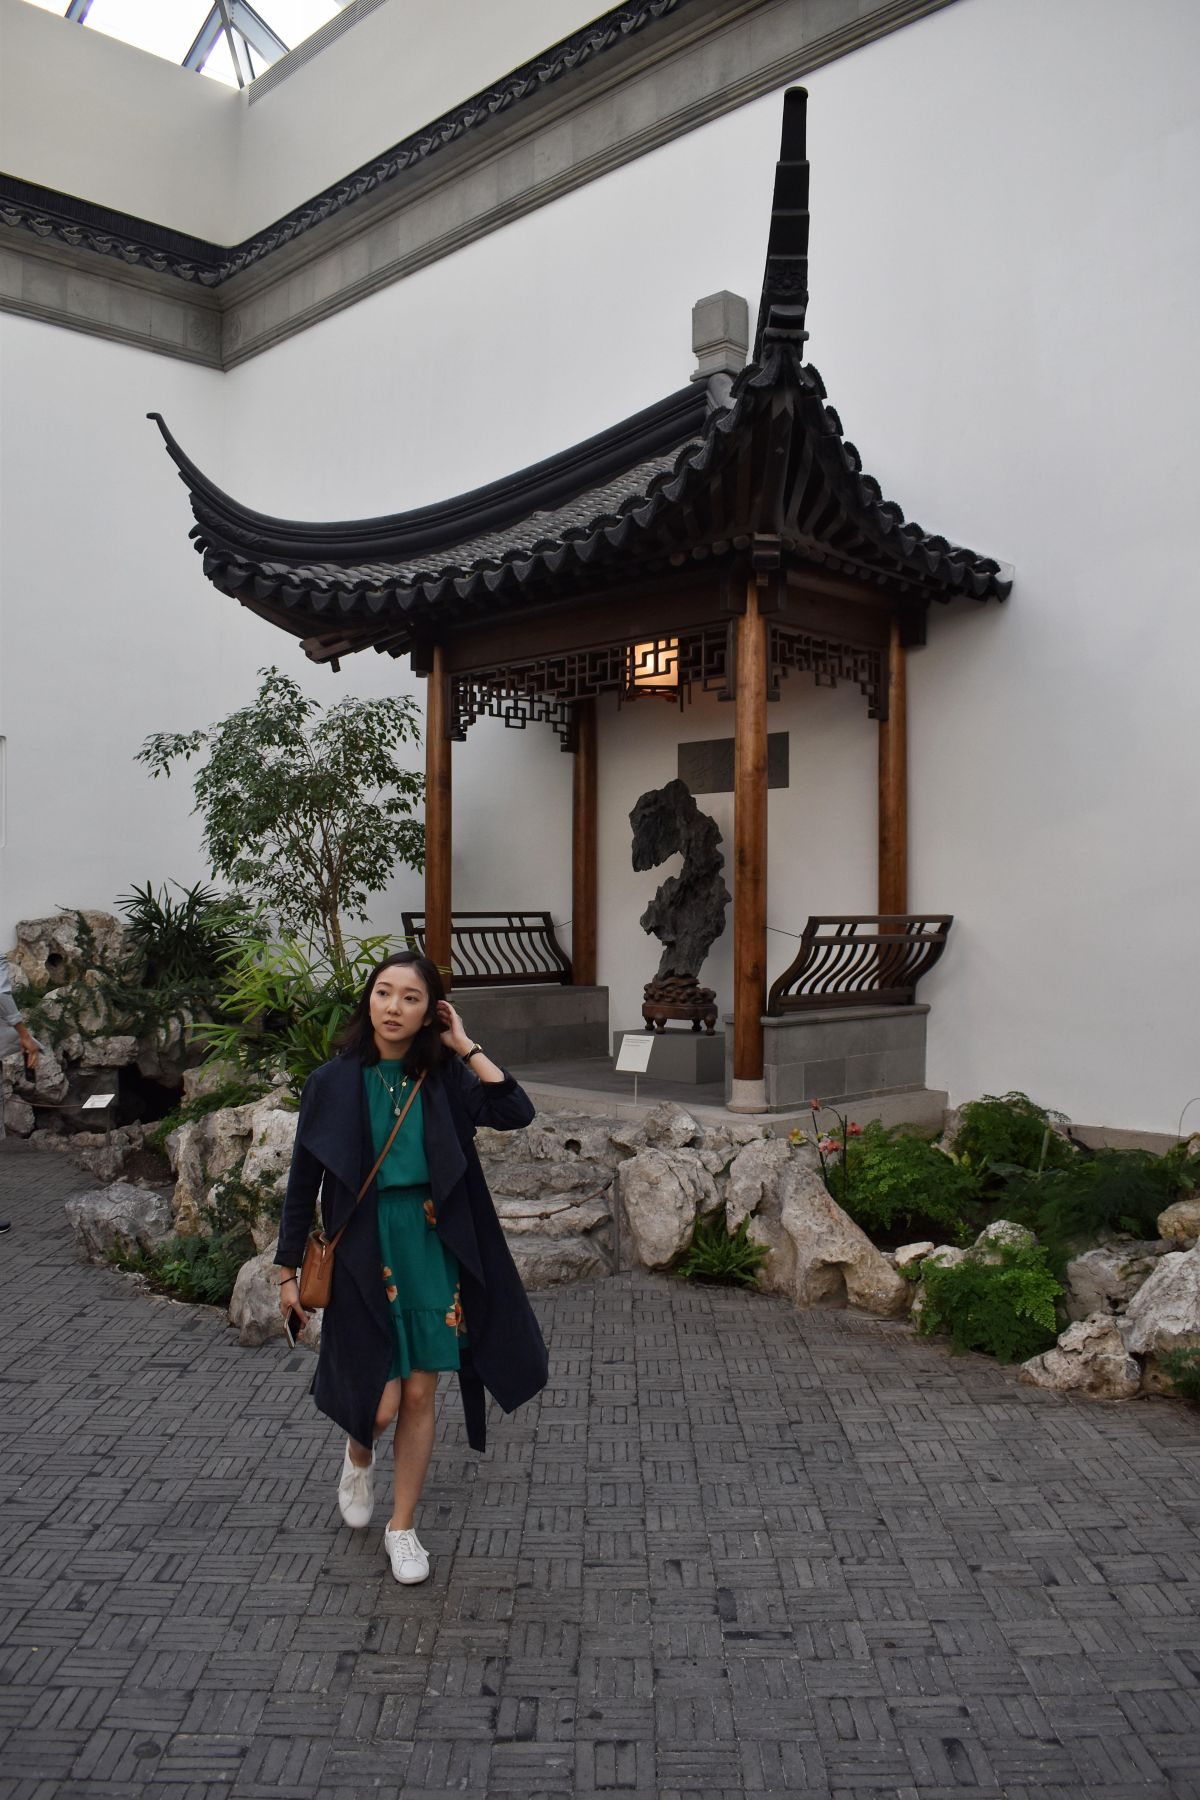 Outfit post by a japanese shrine instalment at the MET museum. Wearing a Club Monaco navy blue duster coat, green floral Effet dress by Aritzia, and women's ace sneakers by Keds.